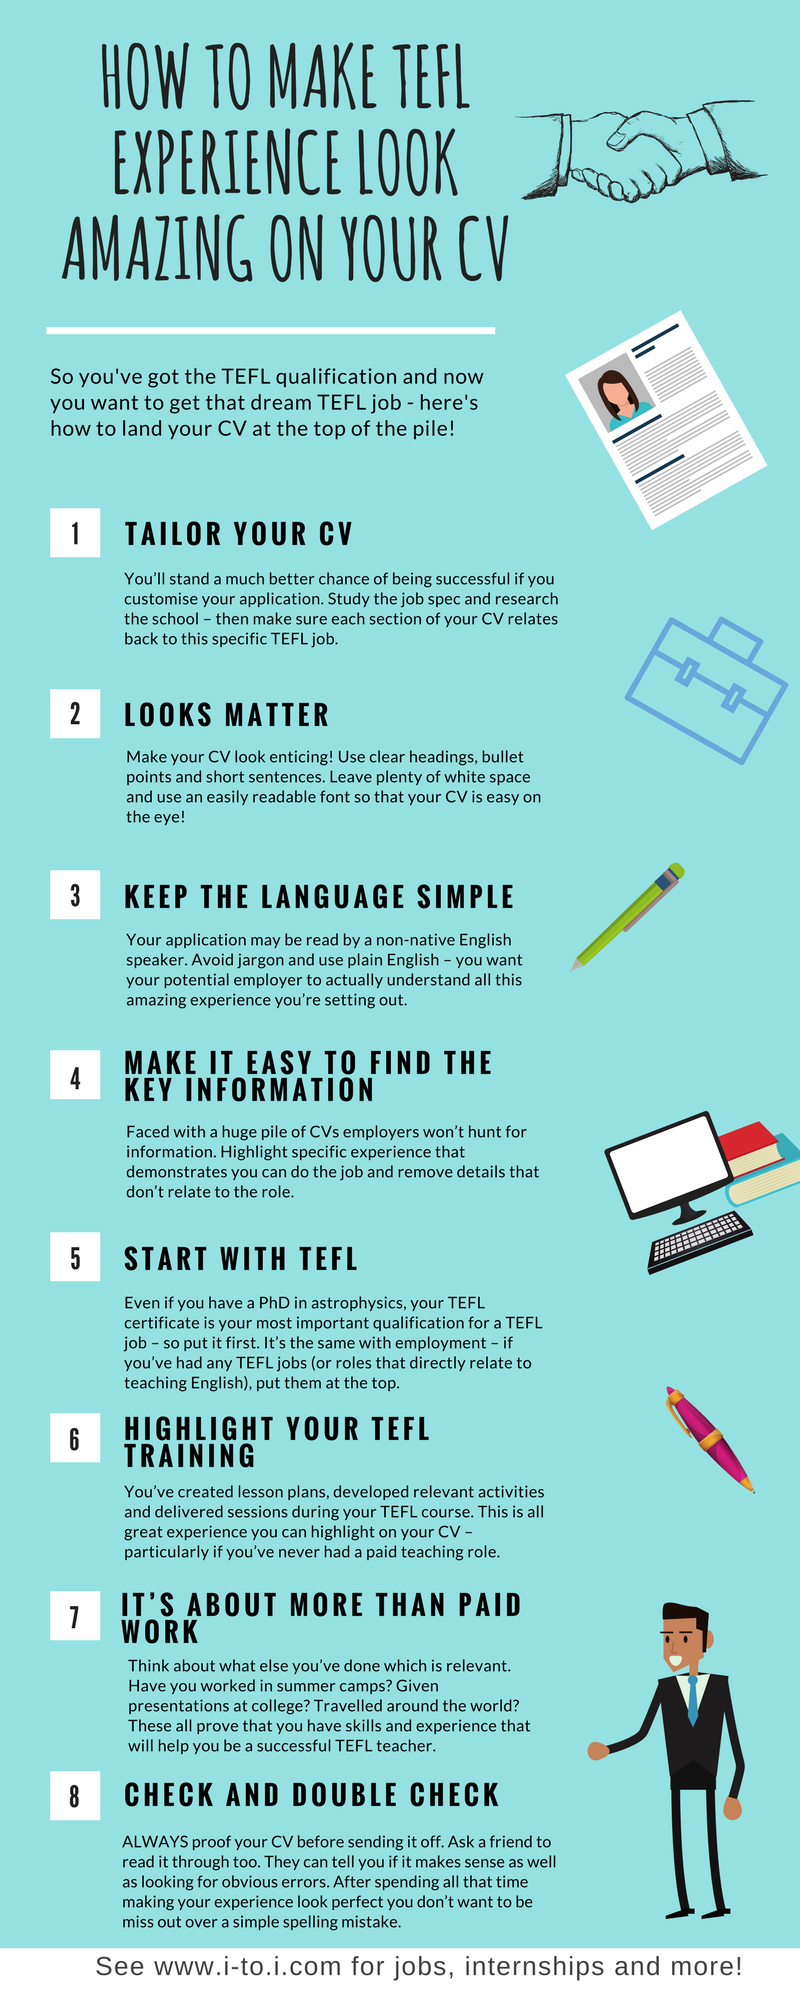 how to make tefl experience look amazing on your cv